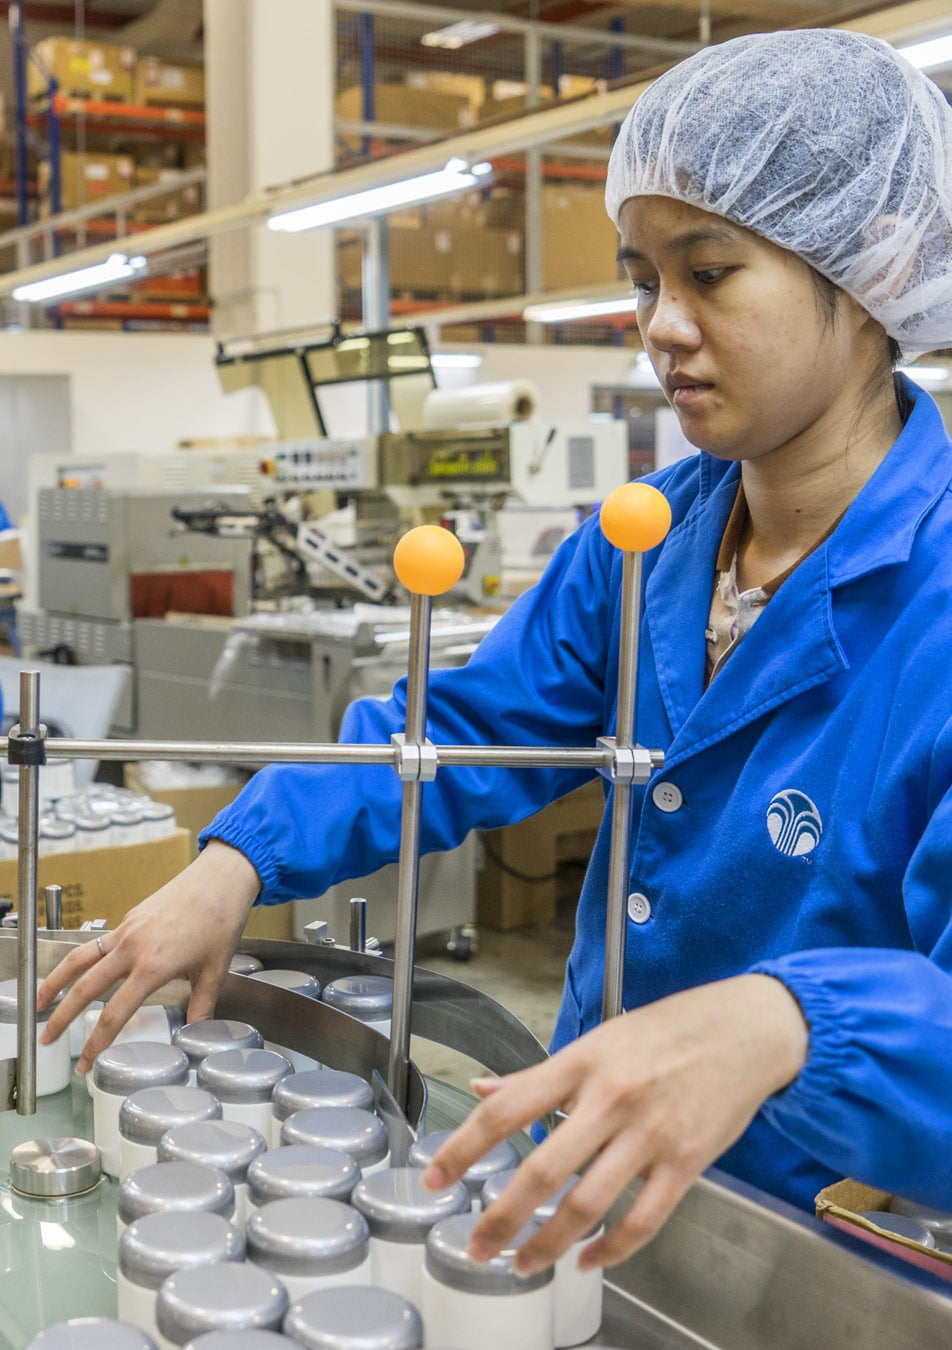 Woman working at pharmaceutical packaging center